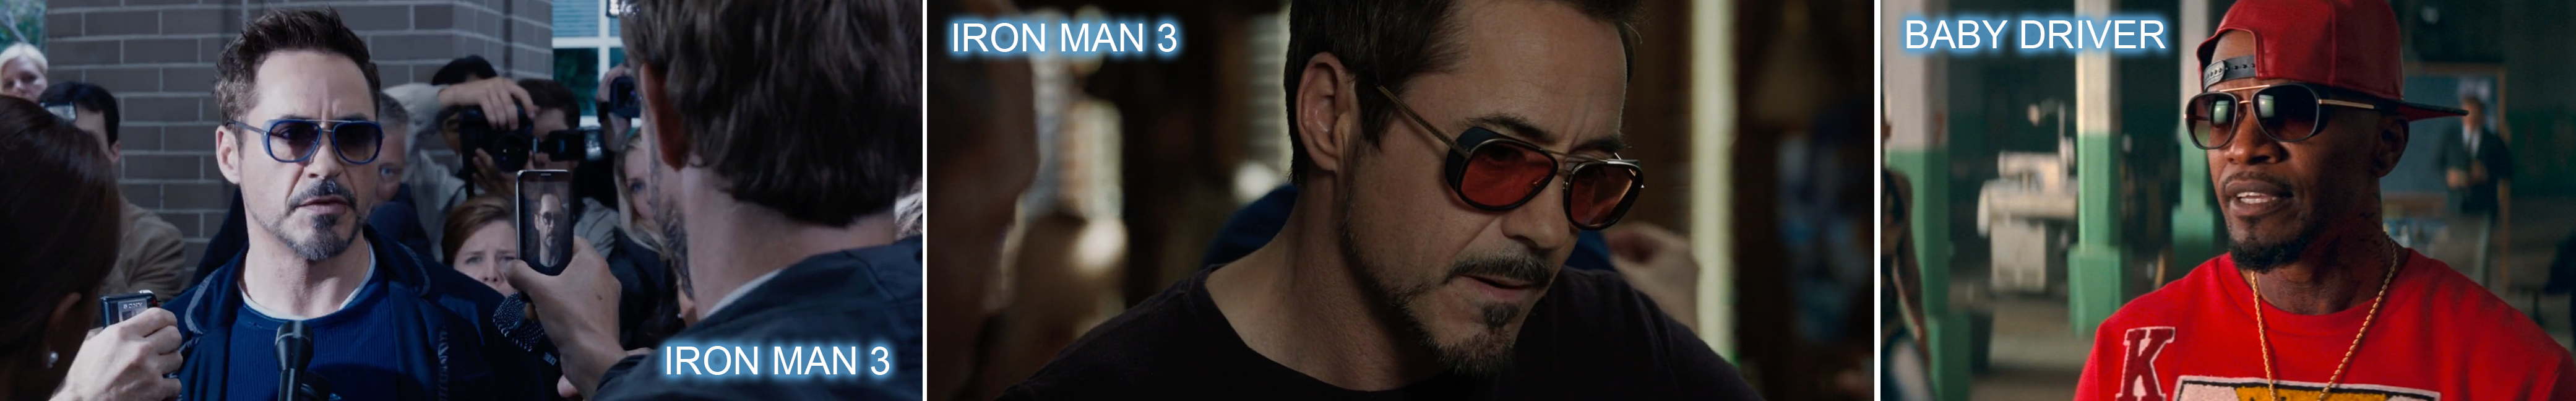 Matsuda sunglasses worn by Robert Downey Jr in Iron Man 3 and Jamie Foxx in Baby Driver